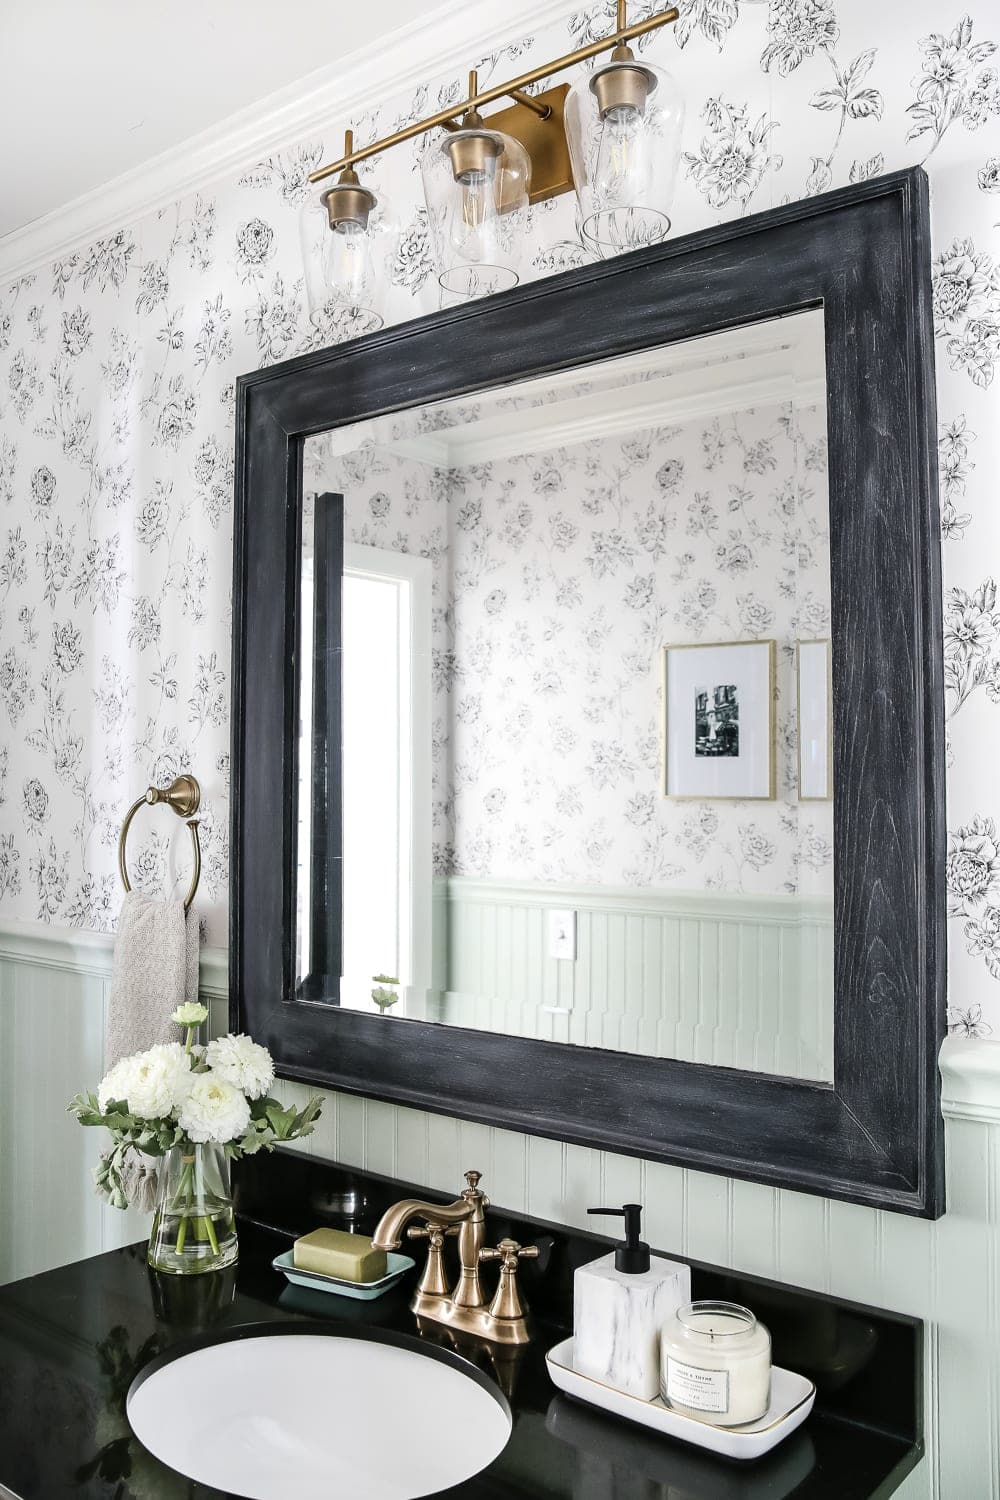 Dry Brushed Black Mirror Makeover Blesserhouse A Plain White Painted Bathroom